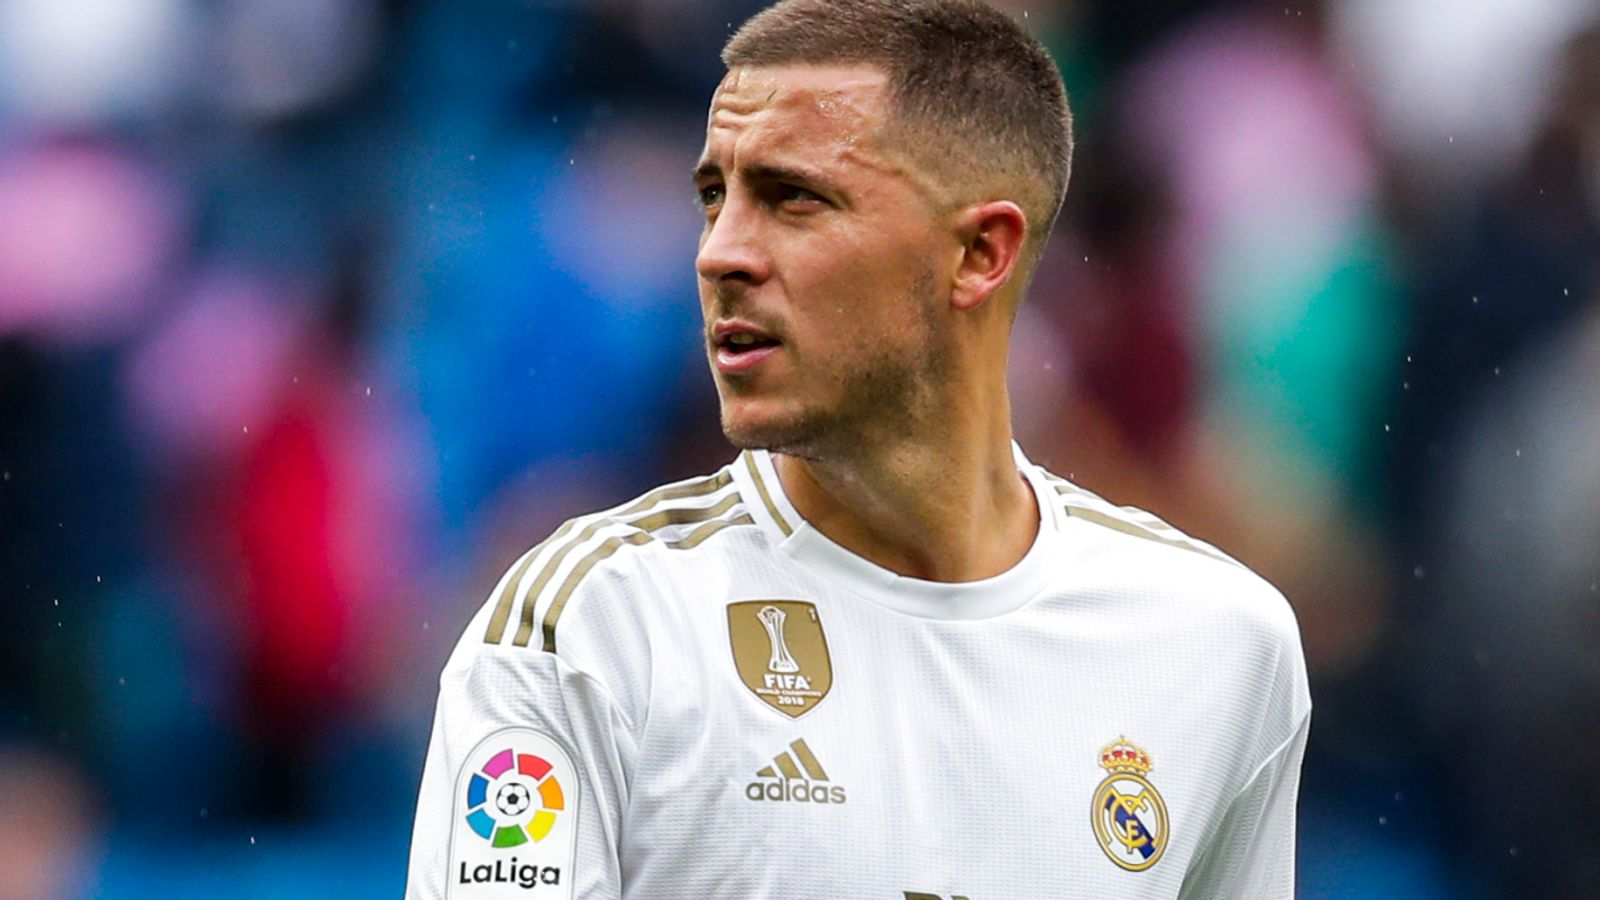 Eden Hazard: Real Madrid star recovering well from ankle surgery, says Roberto Martinez | Football News | Sky Sports